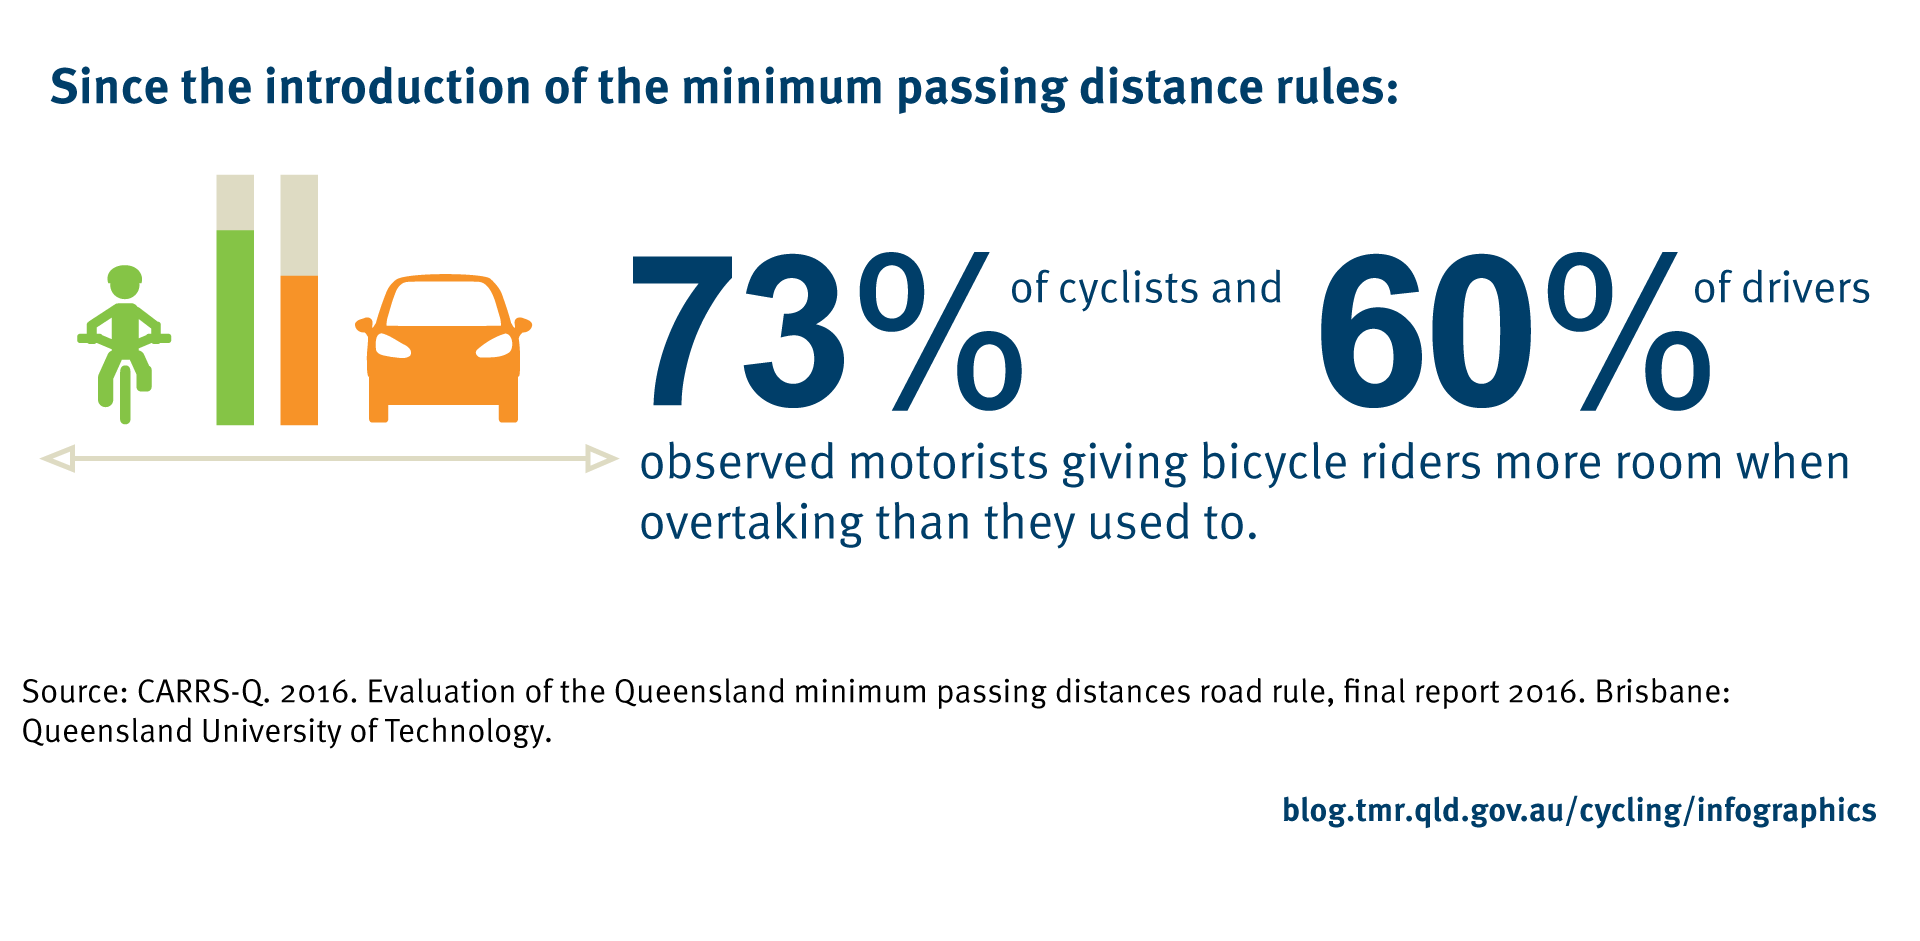 Since the introduction of the minimum passing distance rules, 73% of cyclists and 60% of drivers observed motorists giving bicycle riders more room when overtaking than they used to. Source: CARRS-Q. 2016. Evaluation of the Queensland minimum passing distances road rule, final report 2016. Brisbane: Queensland University of Technology.